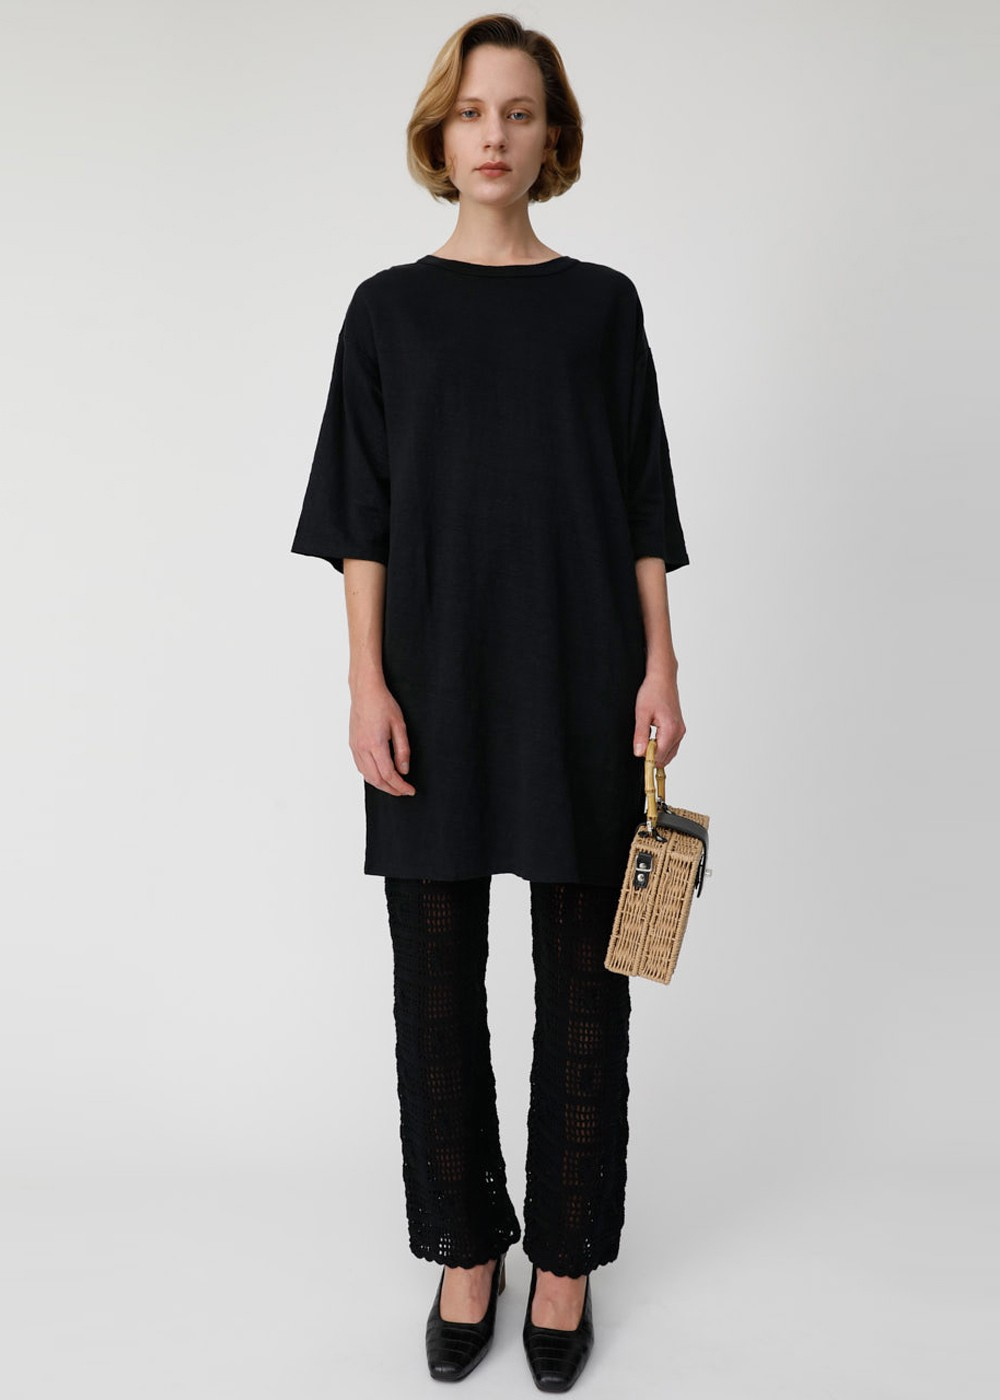 【最大70%OFF】HEMP C/N LOOSE TEE|BLK|Tシャツ|MOUSSY